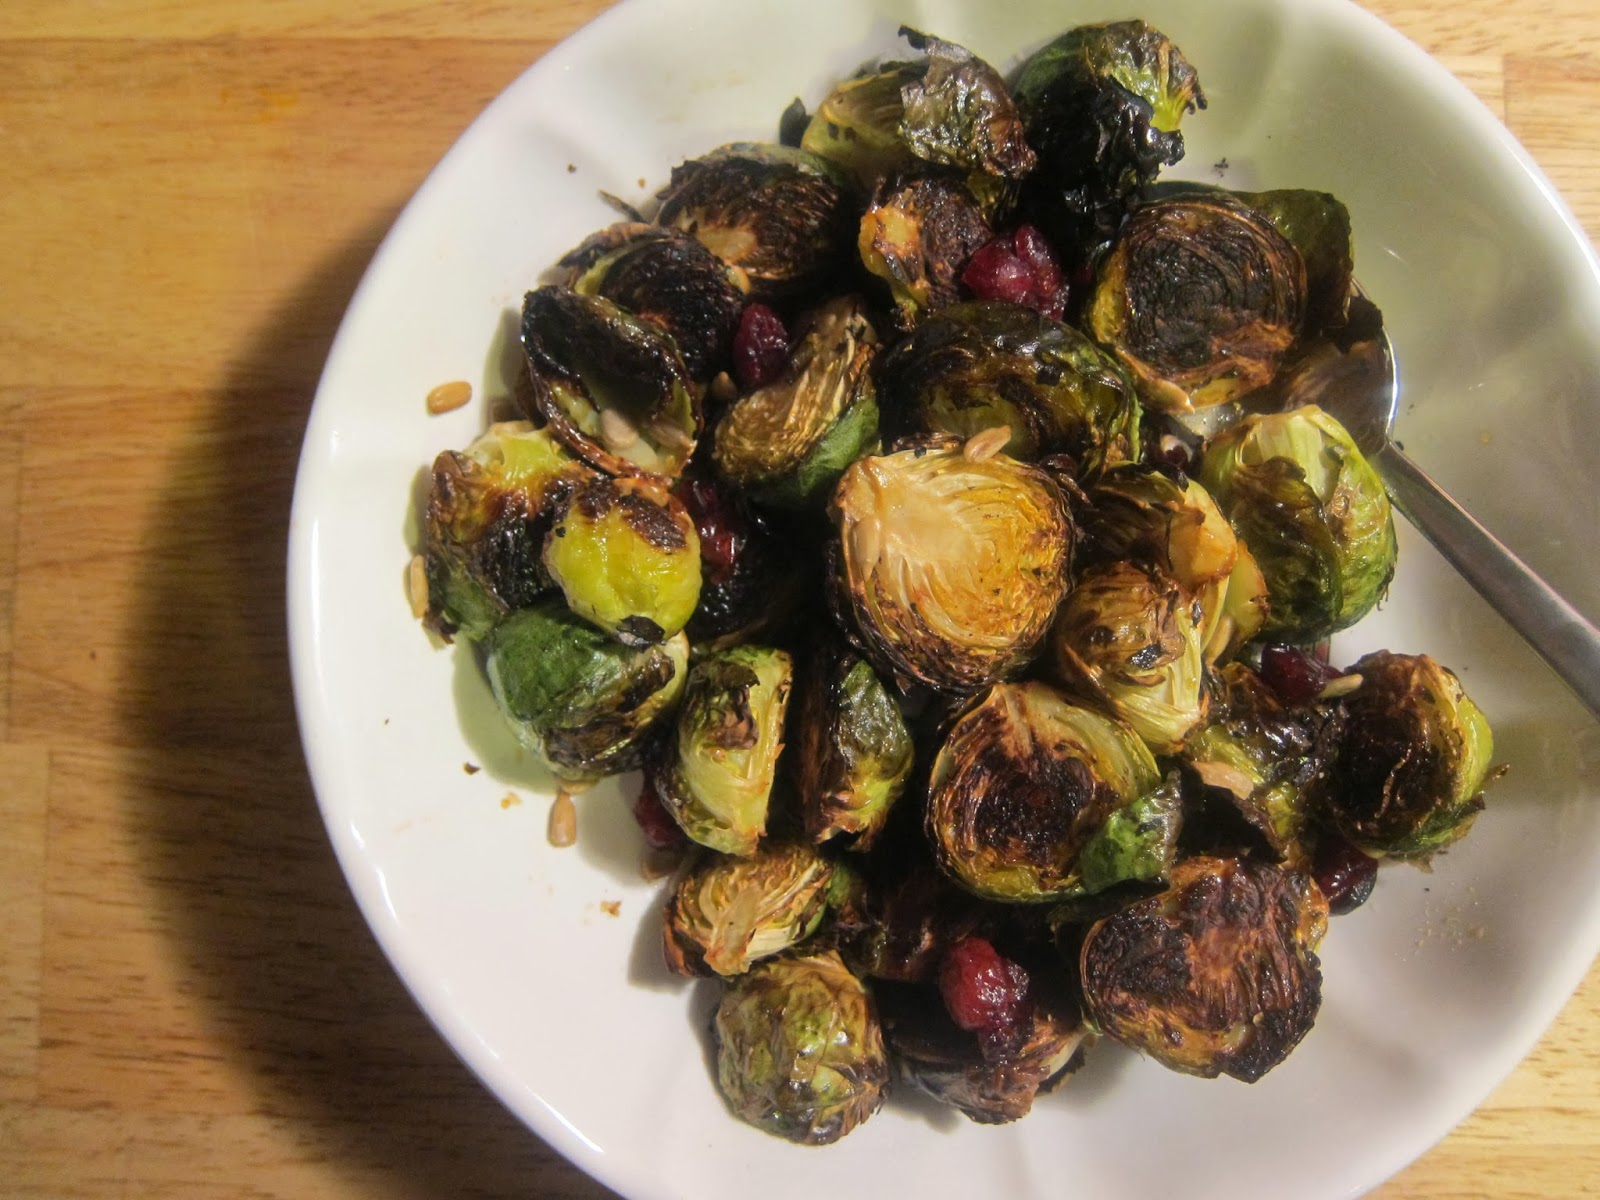 Maple-Roasted Brussels Sprouts | The Economical Eater